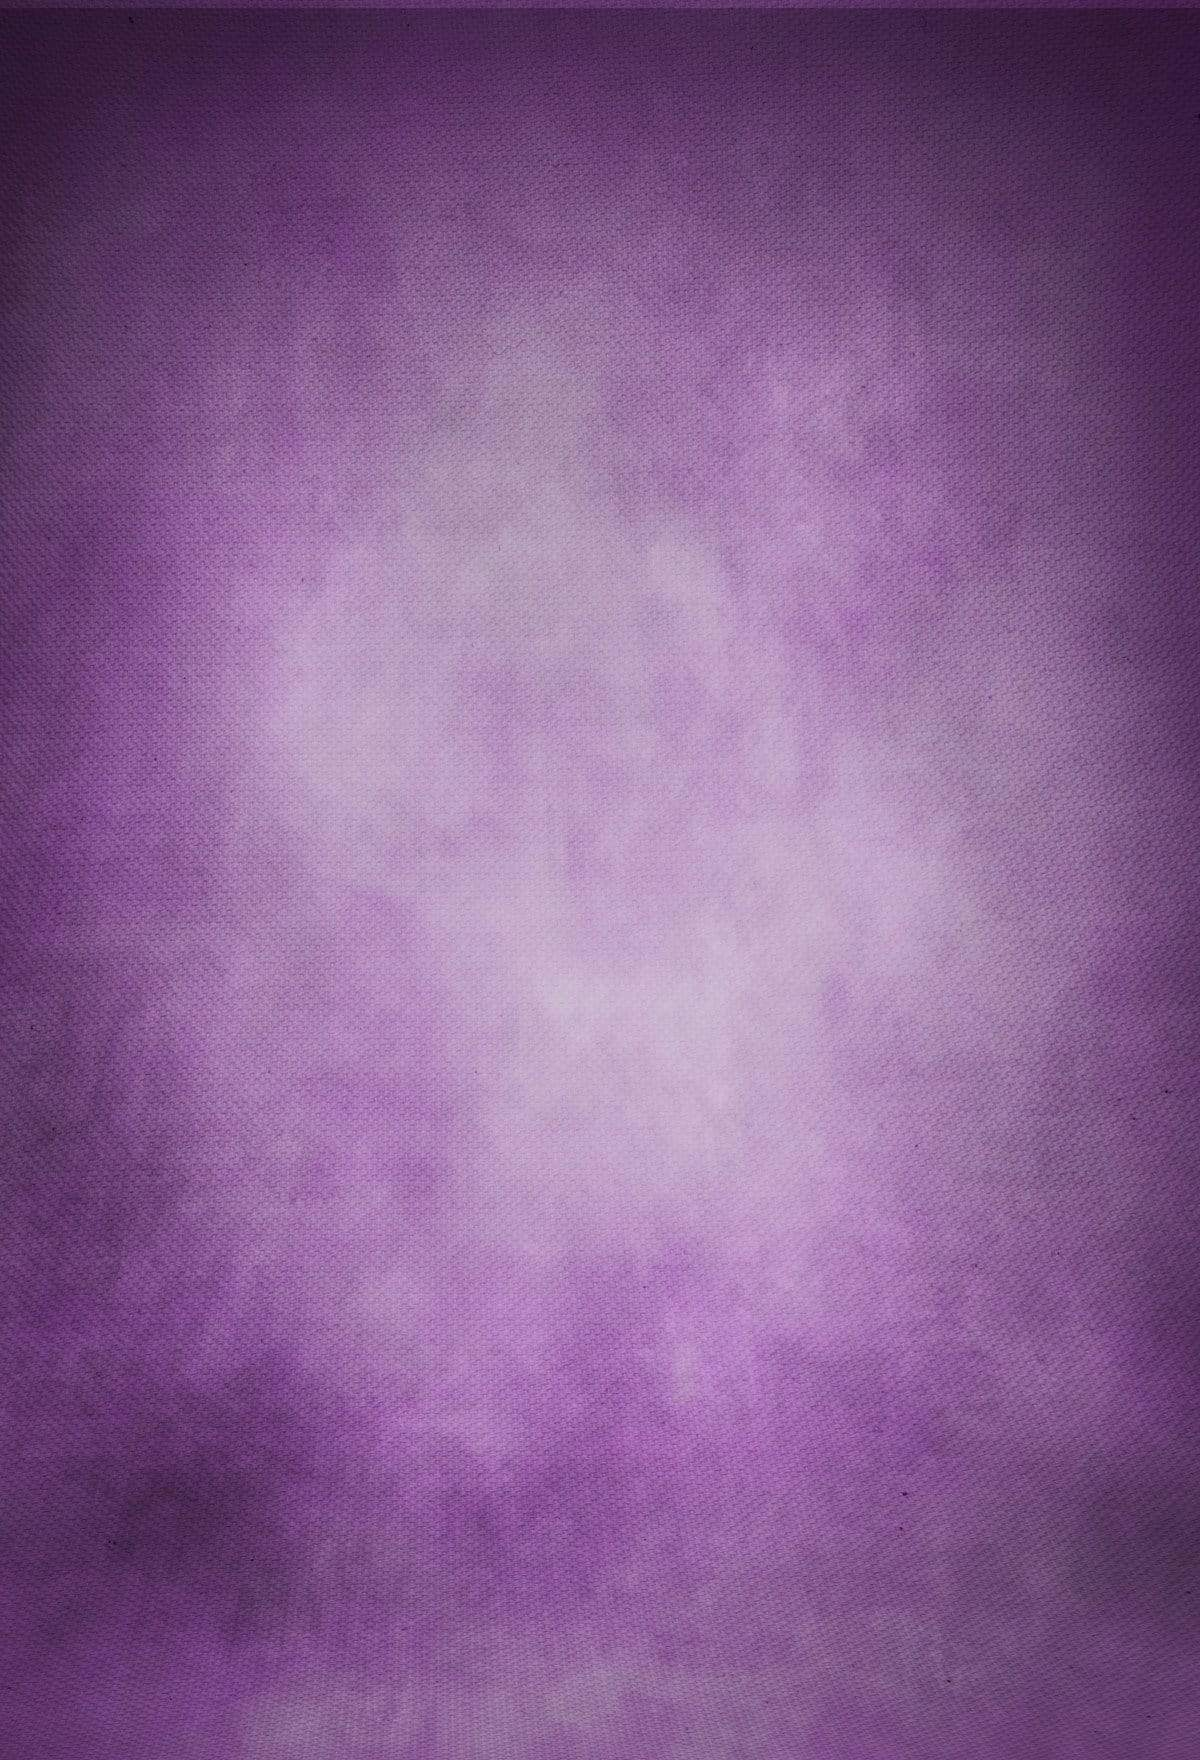 Load image into Gallery viewer, Katebackdrop£ºKate Dark Purple Abstract Texture Backdrop Designed by JFCC